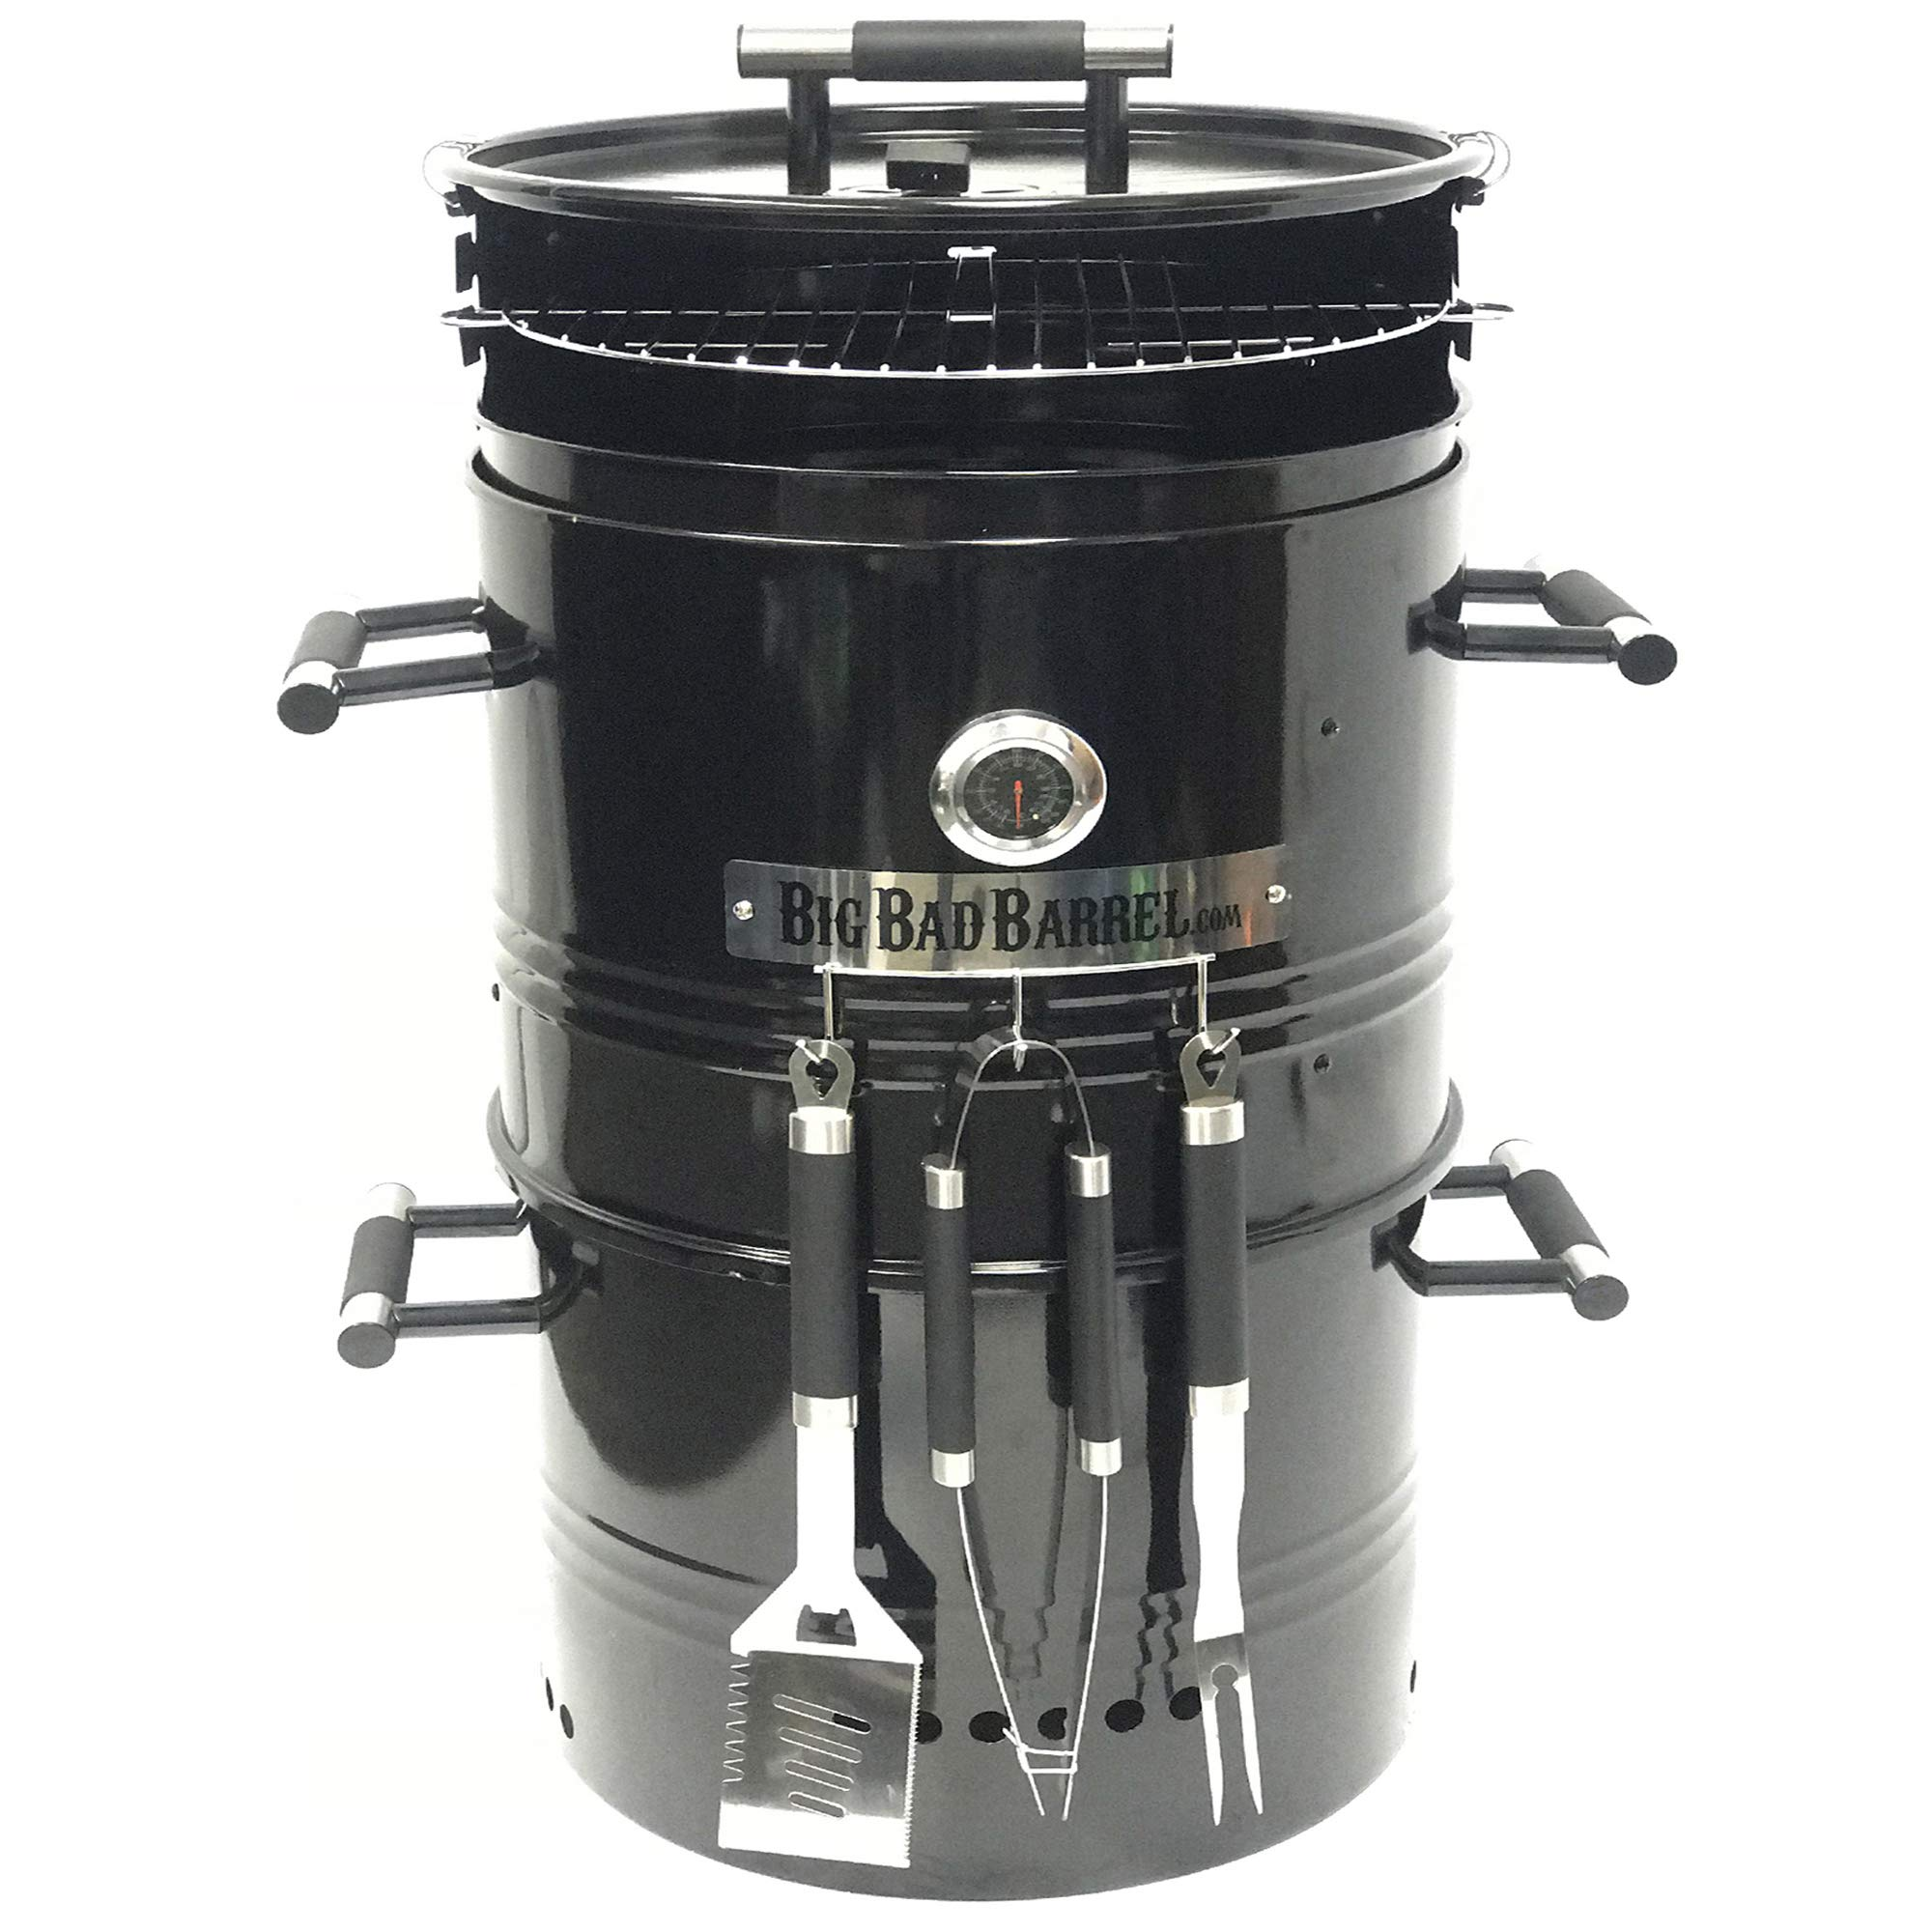 EasyGoProducts Big Bad Barrel Pit Charcoal Barbeque 5 in 1 Can be Used as a Smoker Grill BBQ, Pizza Oven, Table & Fire Pit.18-Inch Diameter-3 pcs Tool, Set